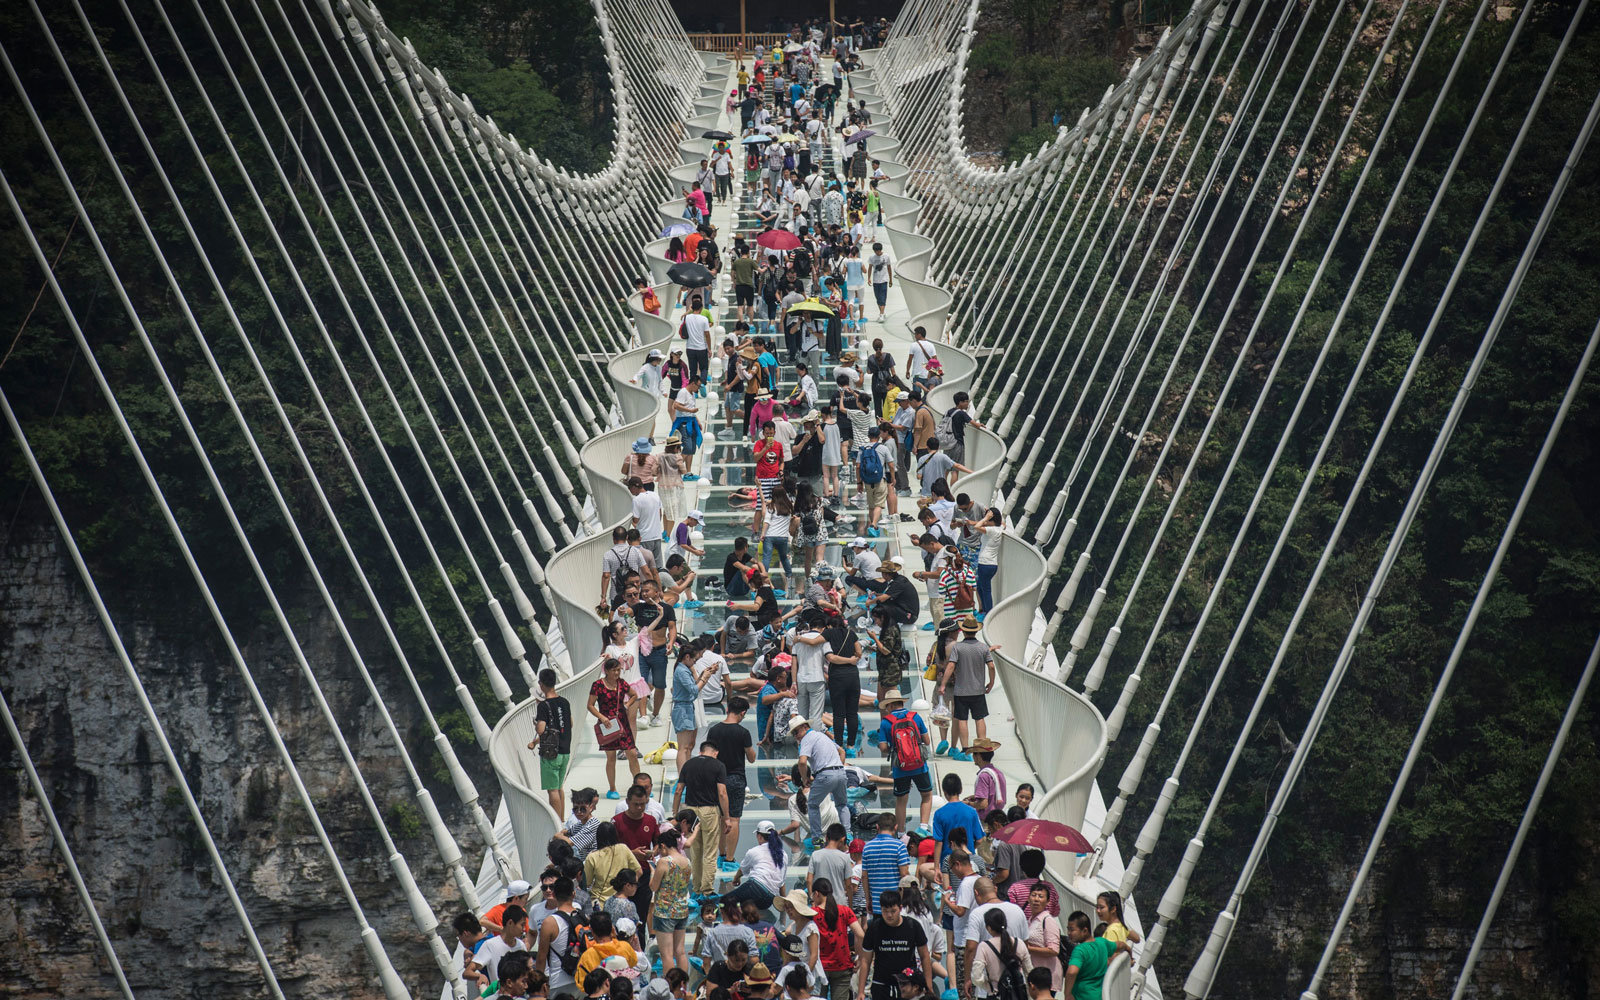 Tourists crowded the glass bridge in China.